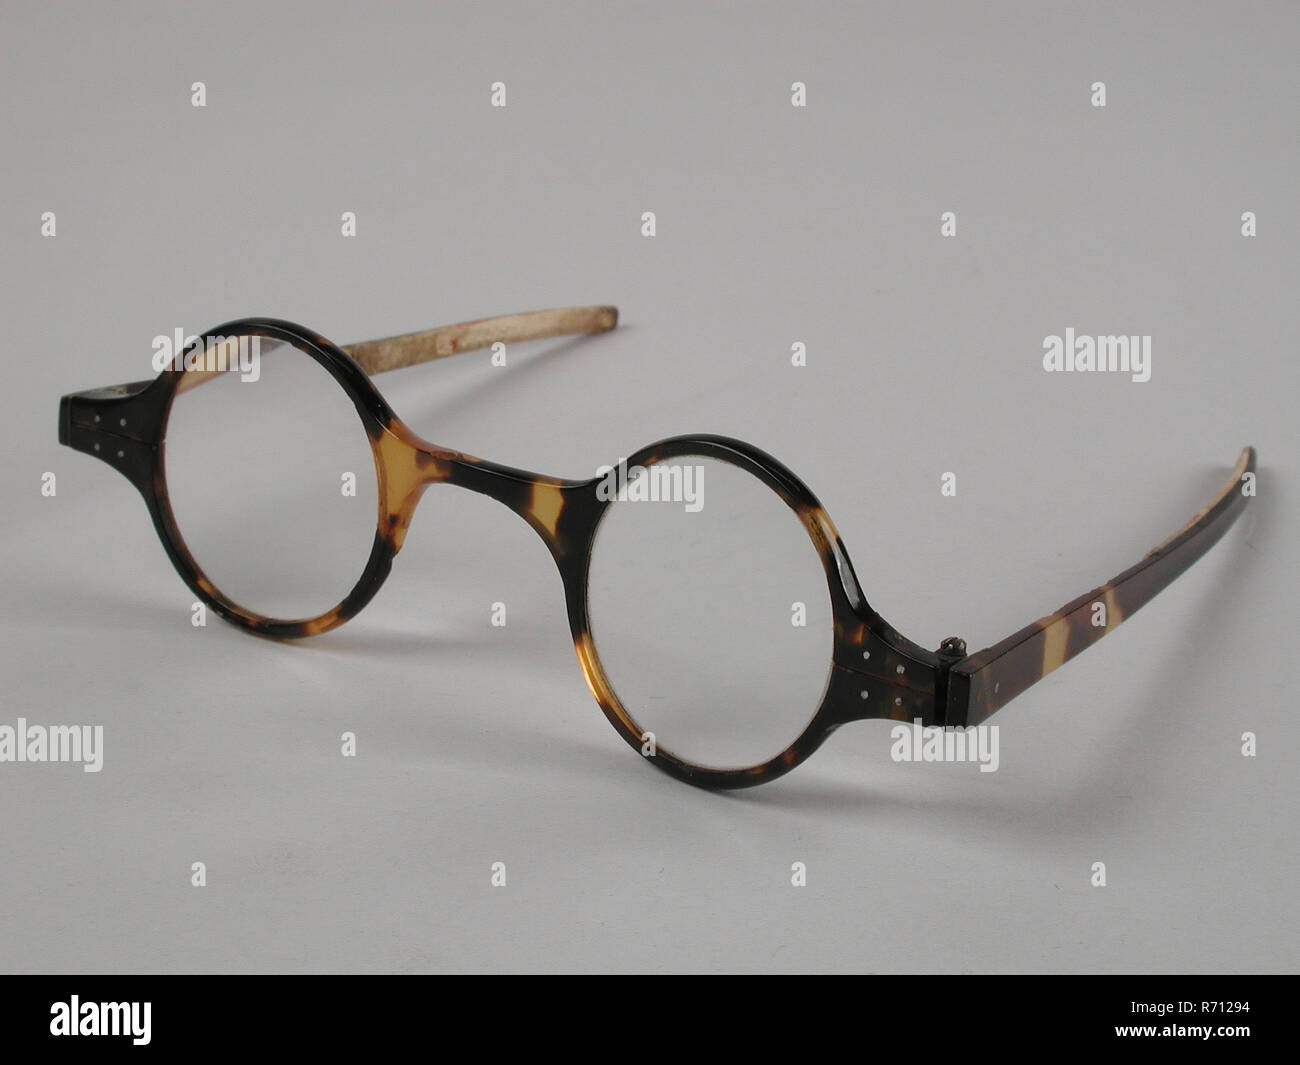 c9a470f514b Glasses with round lenses on strength